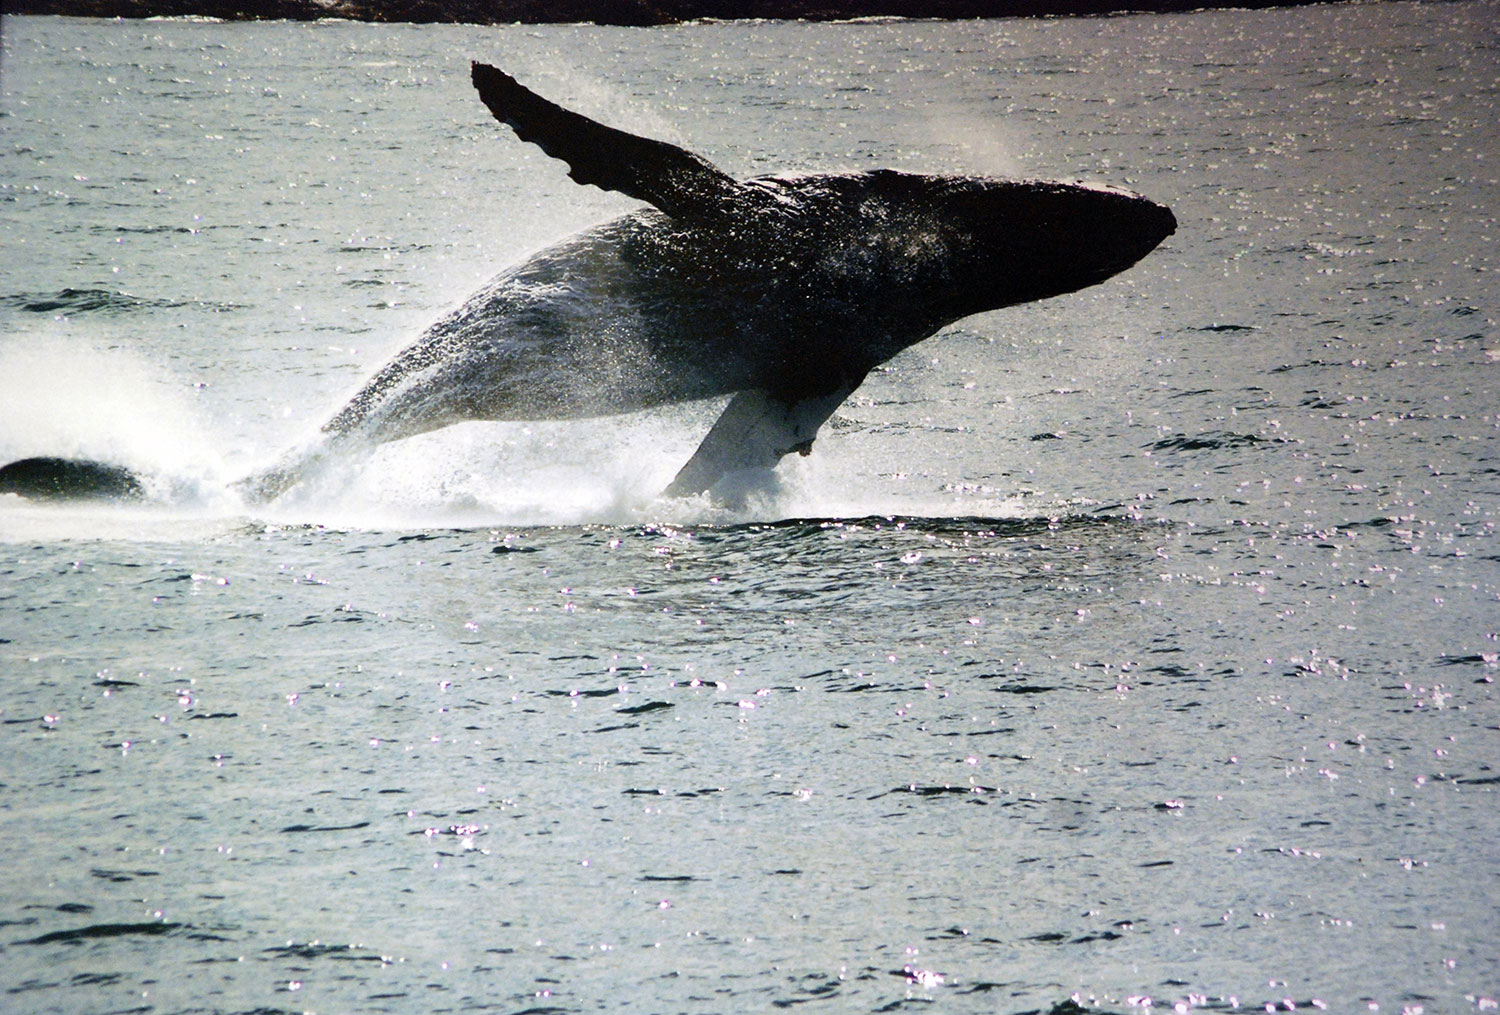 A humpback whale breaching on the waters of the Northern inside passage outside of Juneau.